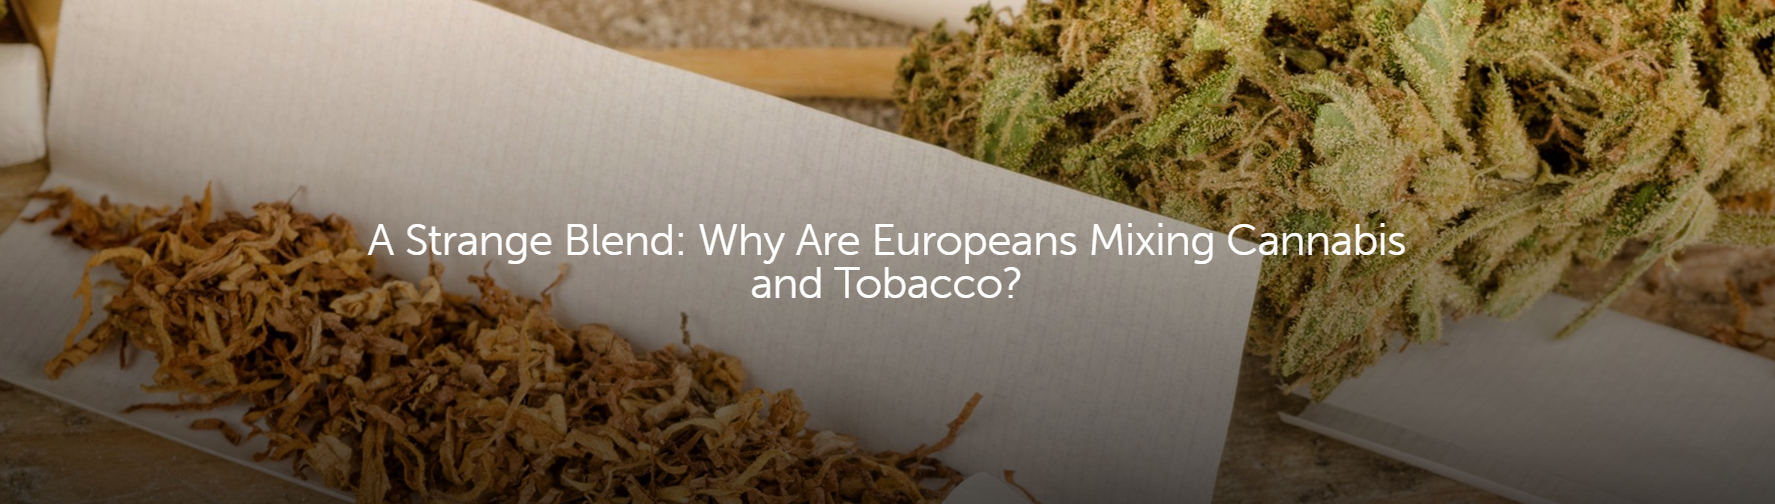 why are europeans mixing cannabis and tobacco